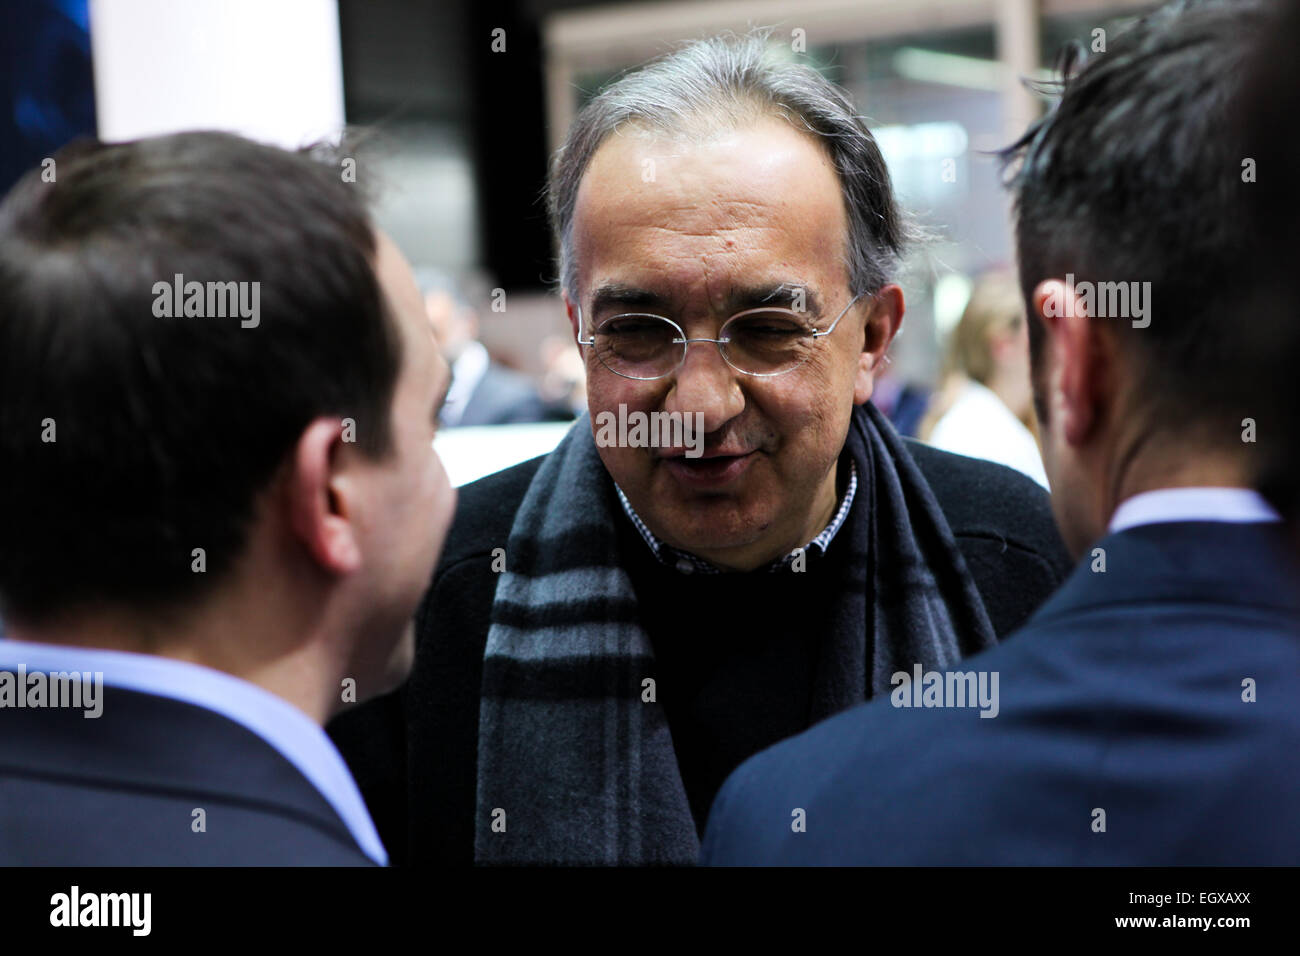 Geneva, Switzerland. 03rd Mar, 2015. FCA AD Sergio Marchionne visiting the Fiat stand at Geneve Motor Show 2015 - Stock Image